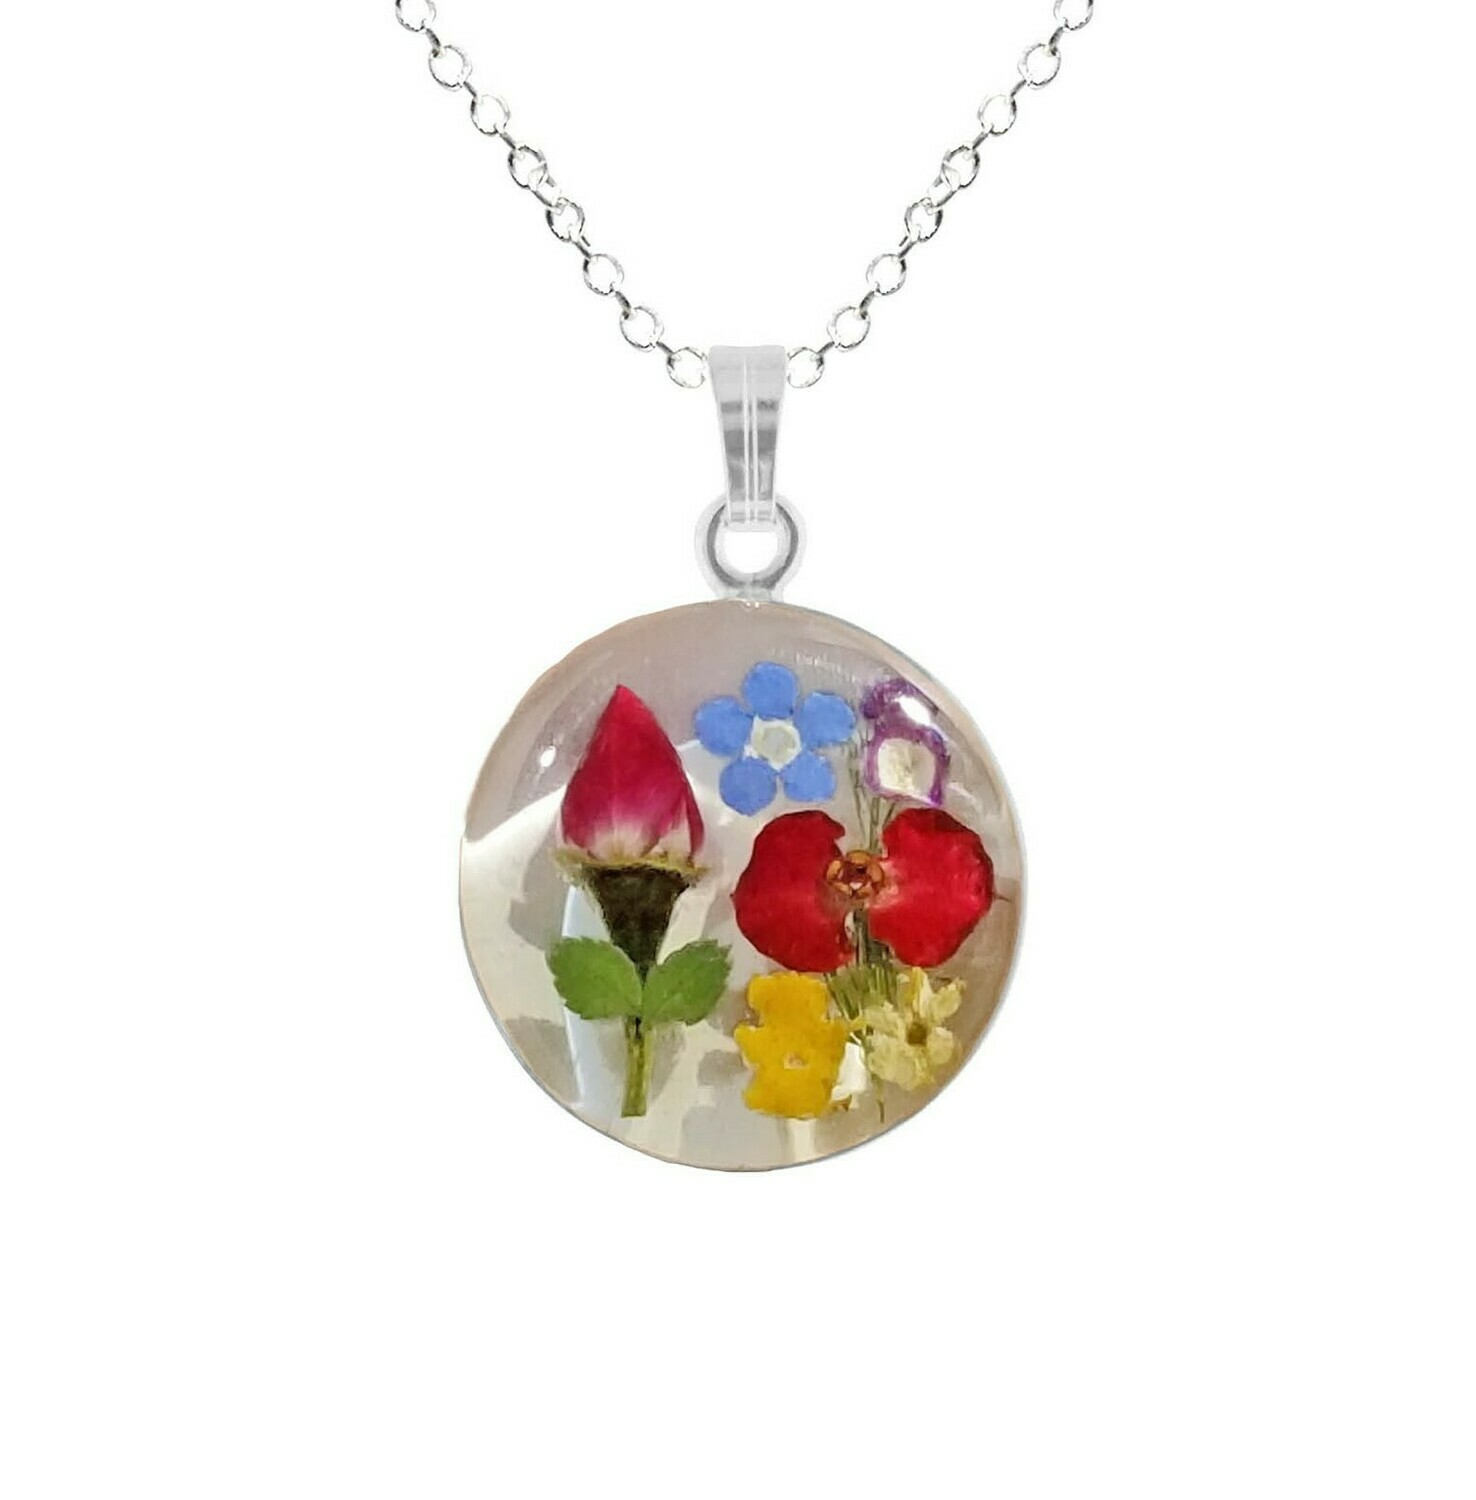 Rose & Mix Flowers Necklace, Medium Circle, White Background